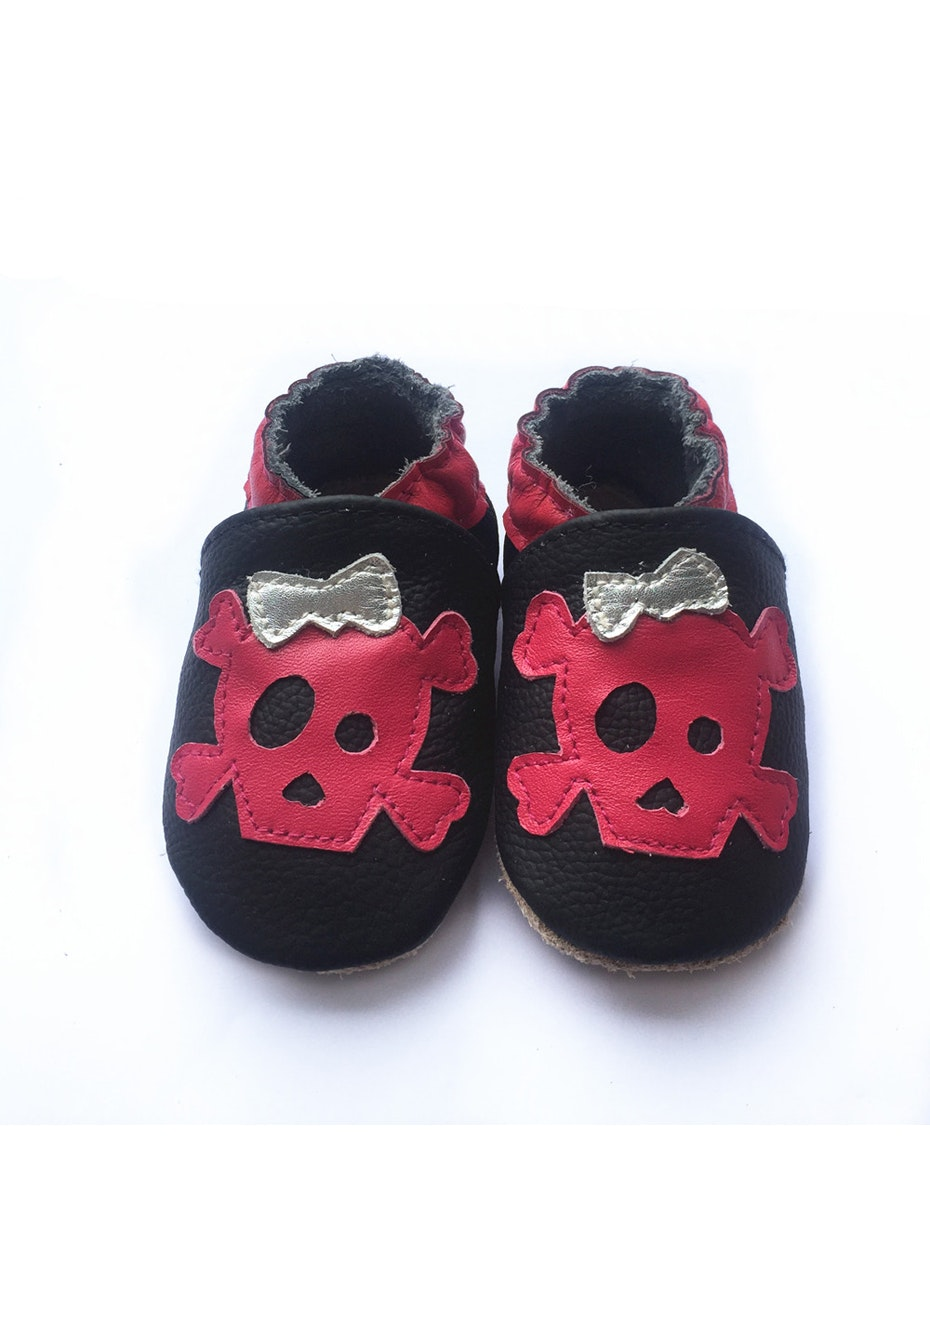 Baby  Leather Shoes - Black / Red Skull